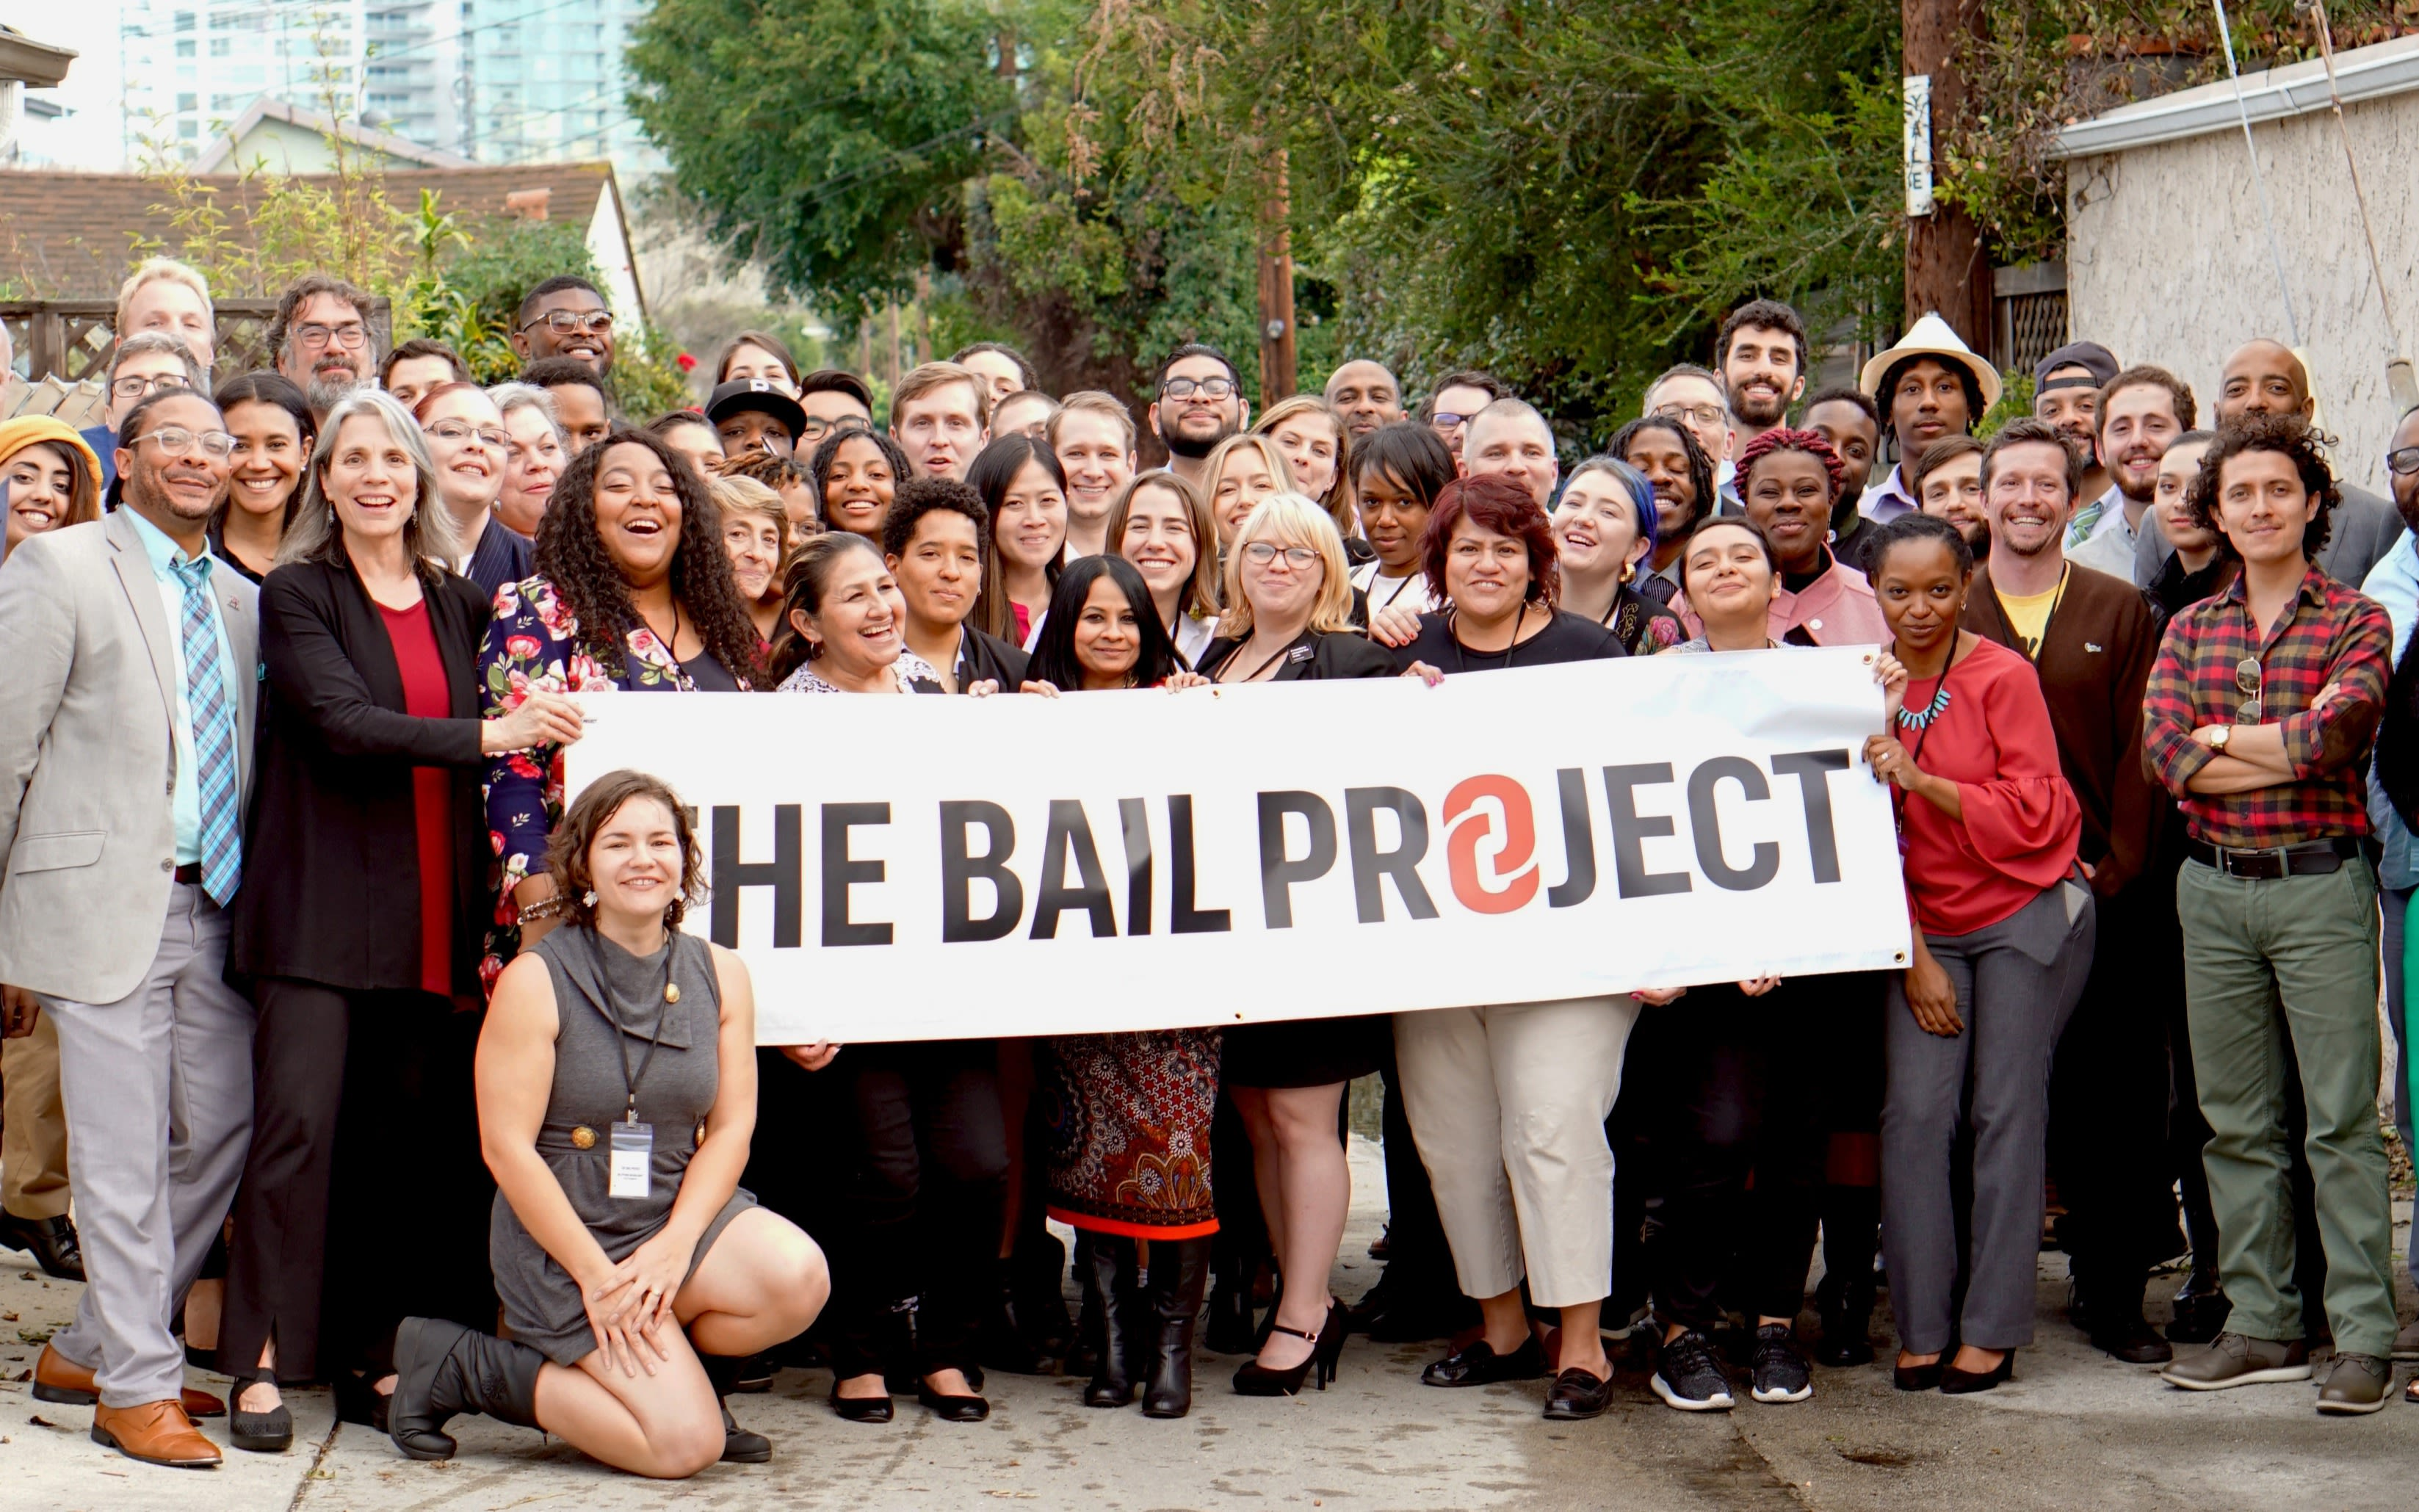 The team from The Bail Project stand with a banner reading The Bail Project